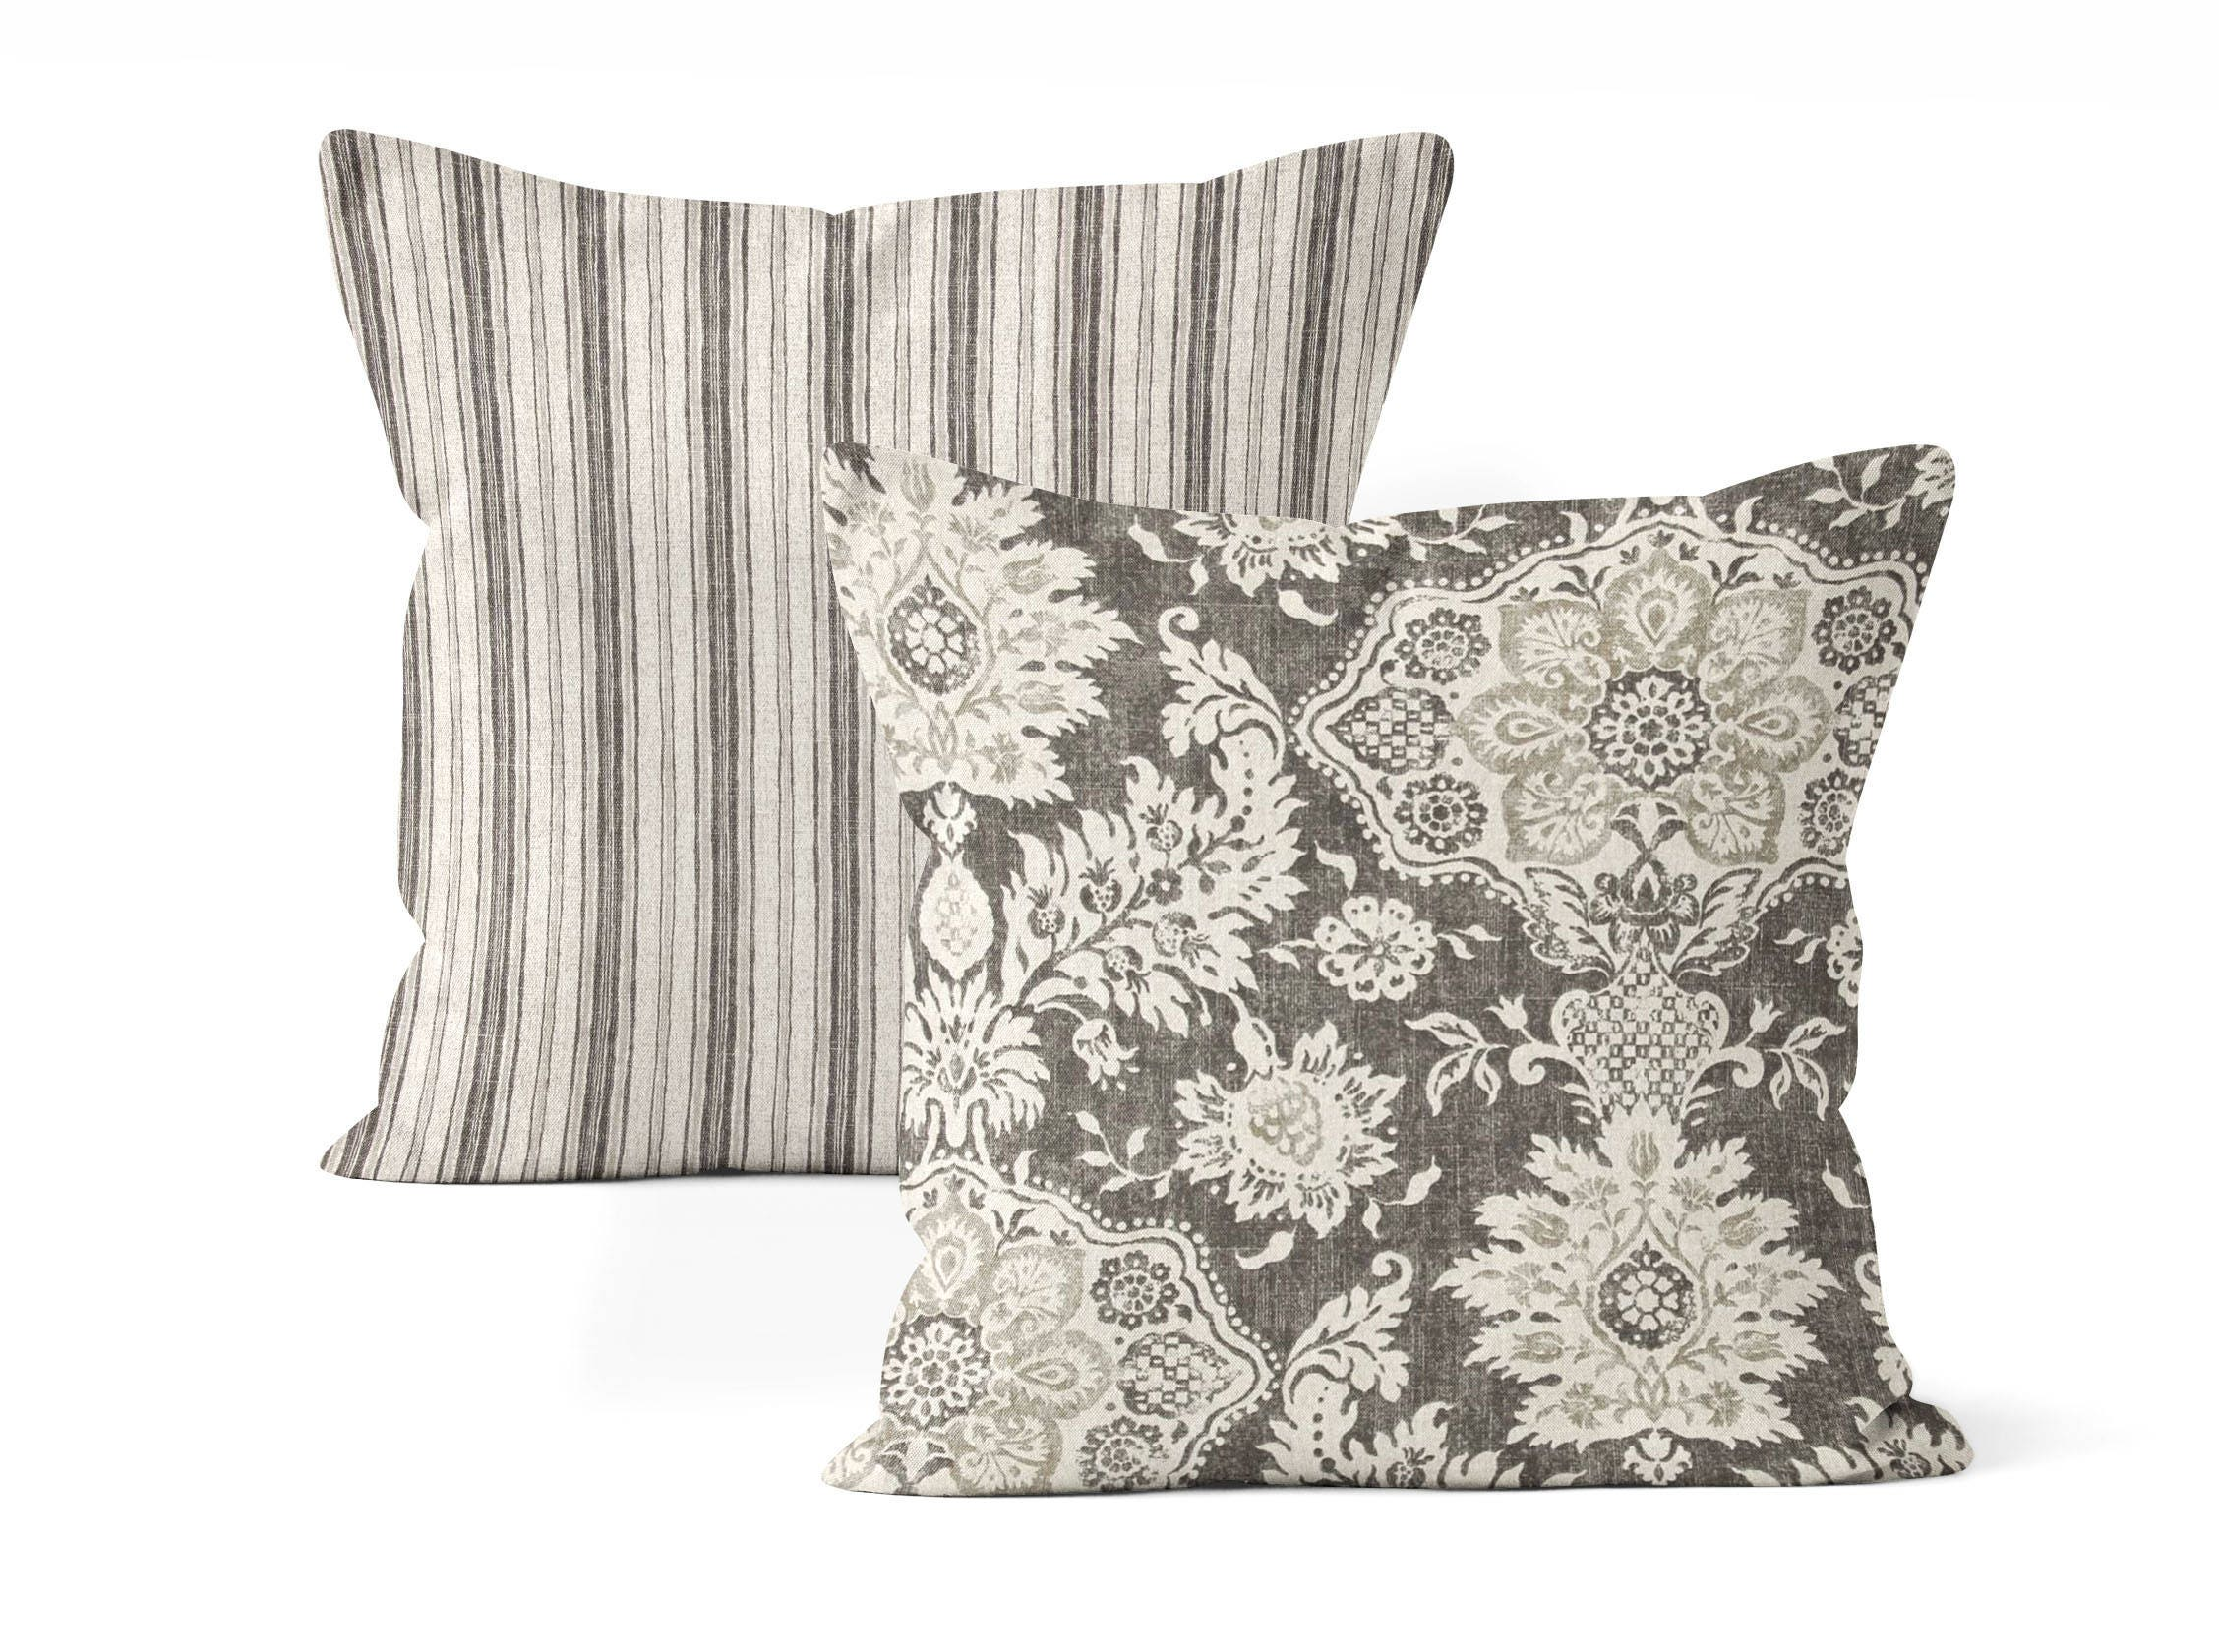 Throw Pillow Covers Set : 2 farmhouse pillow cover set, throw pillow cover,floral and stripes, dark gray, bed pillows ...